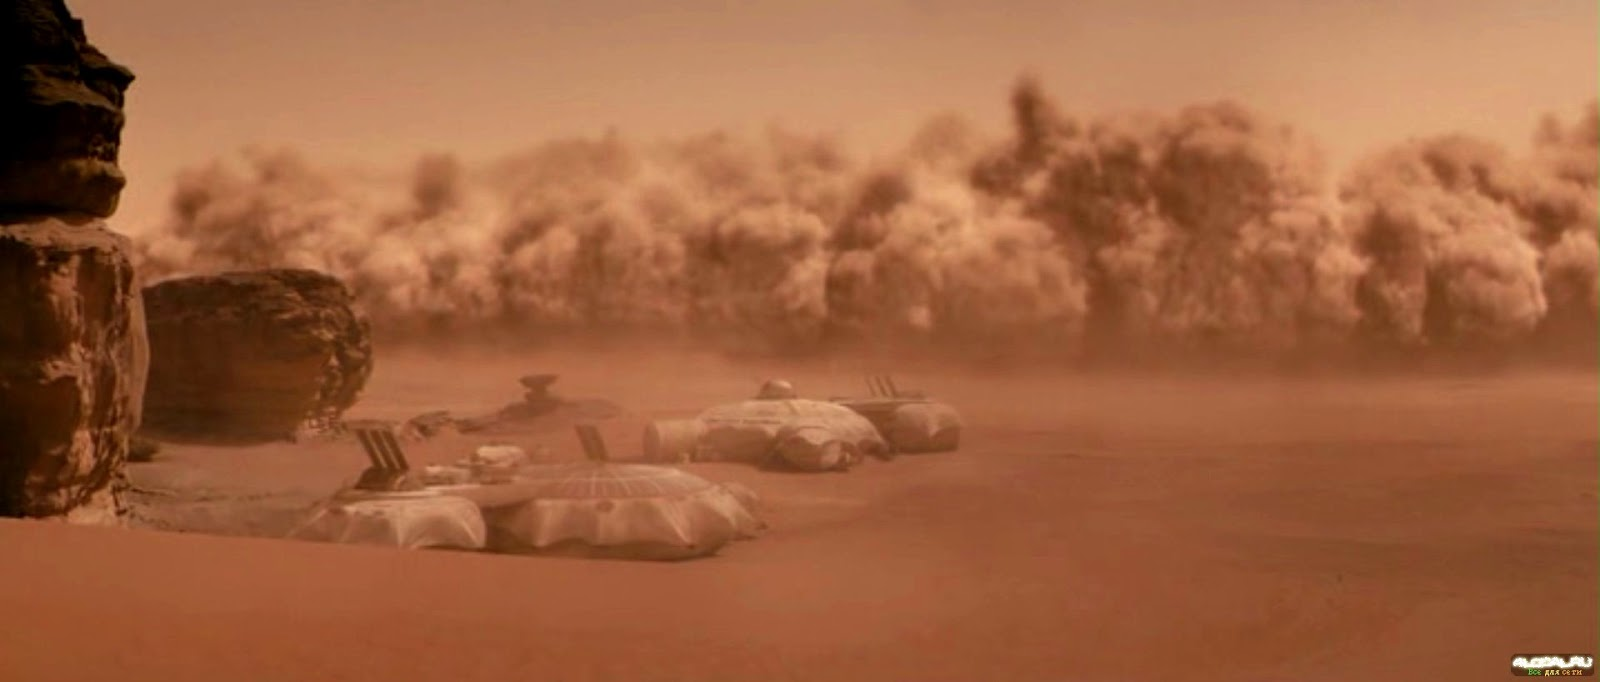 Human Mars Images From The Last Days On Mars Movie